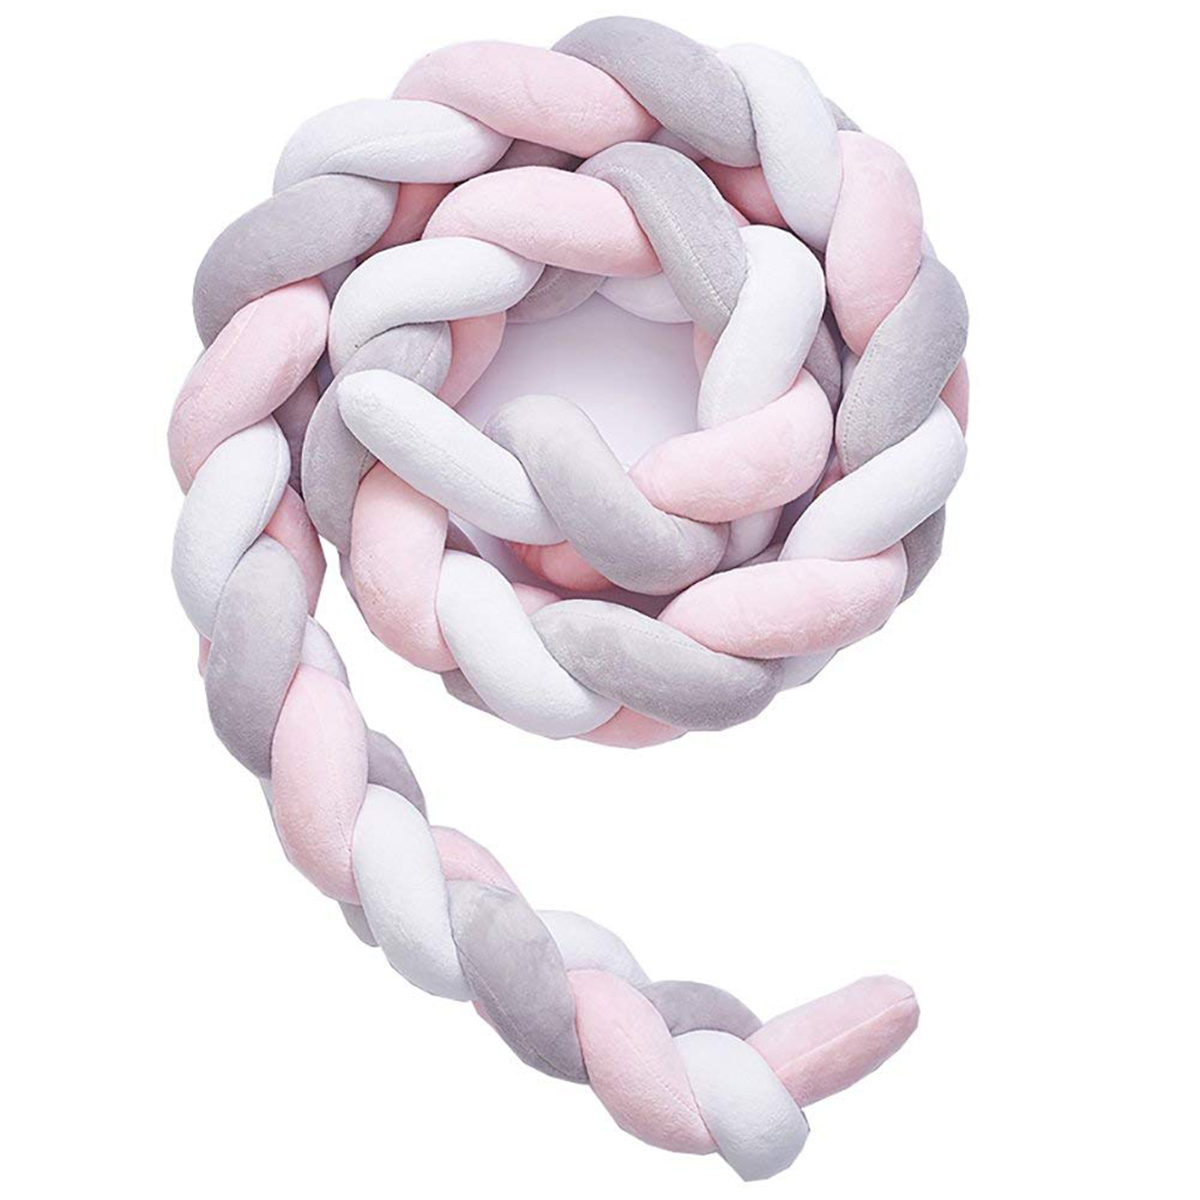 Baby Crib Bumper Knotted Braided Plush Nursery Cradle Decor Newborn Gift Pillow Cushion Junior Bed Sleep Bumper (2 Meters, Whi